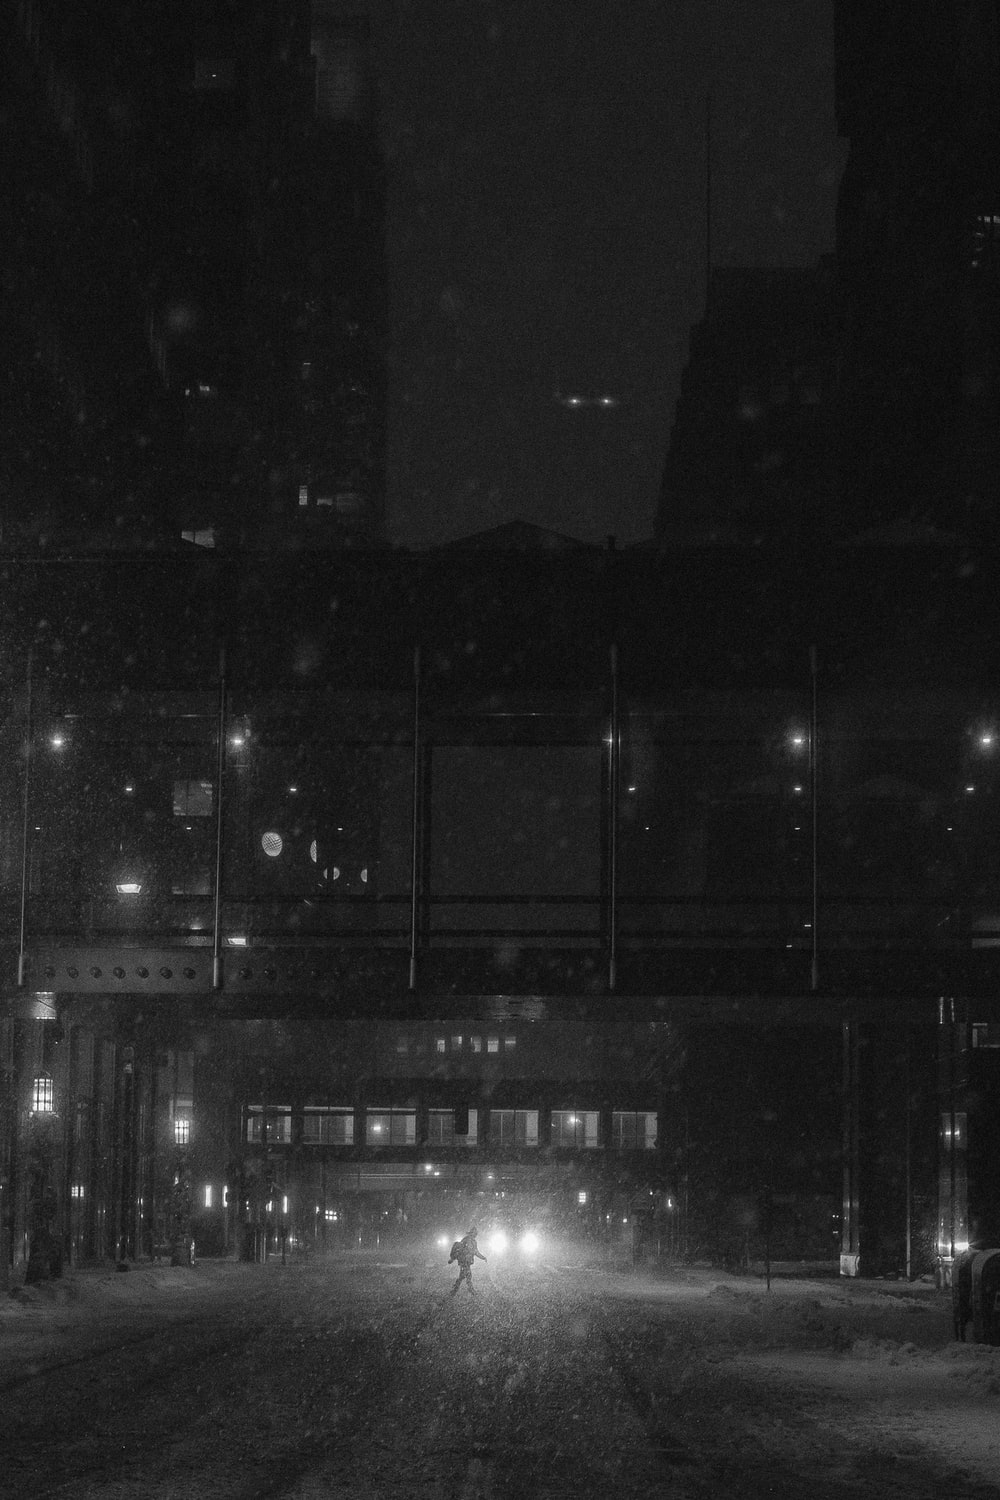 grayscale photography of walking person on road during night